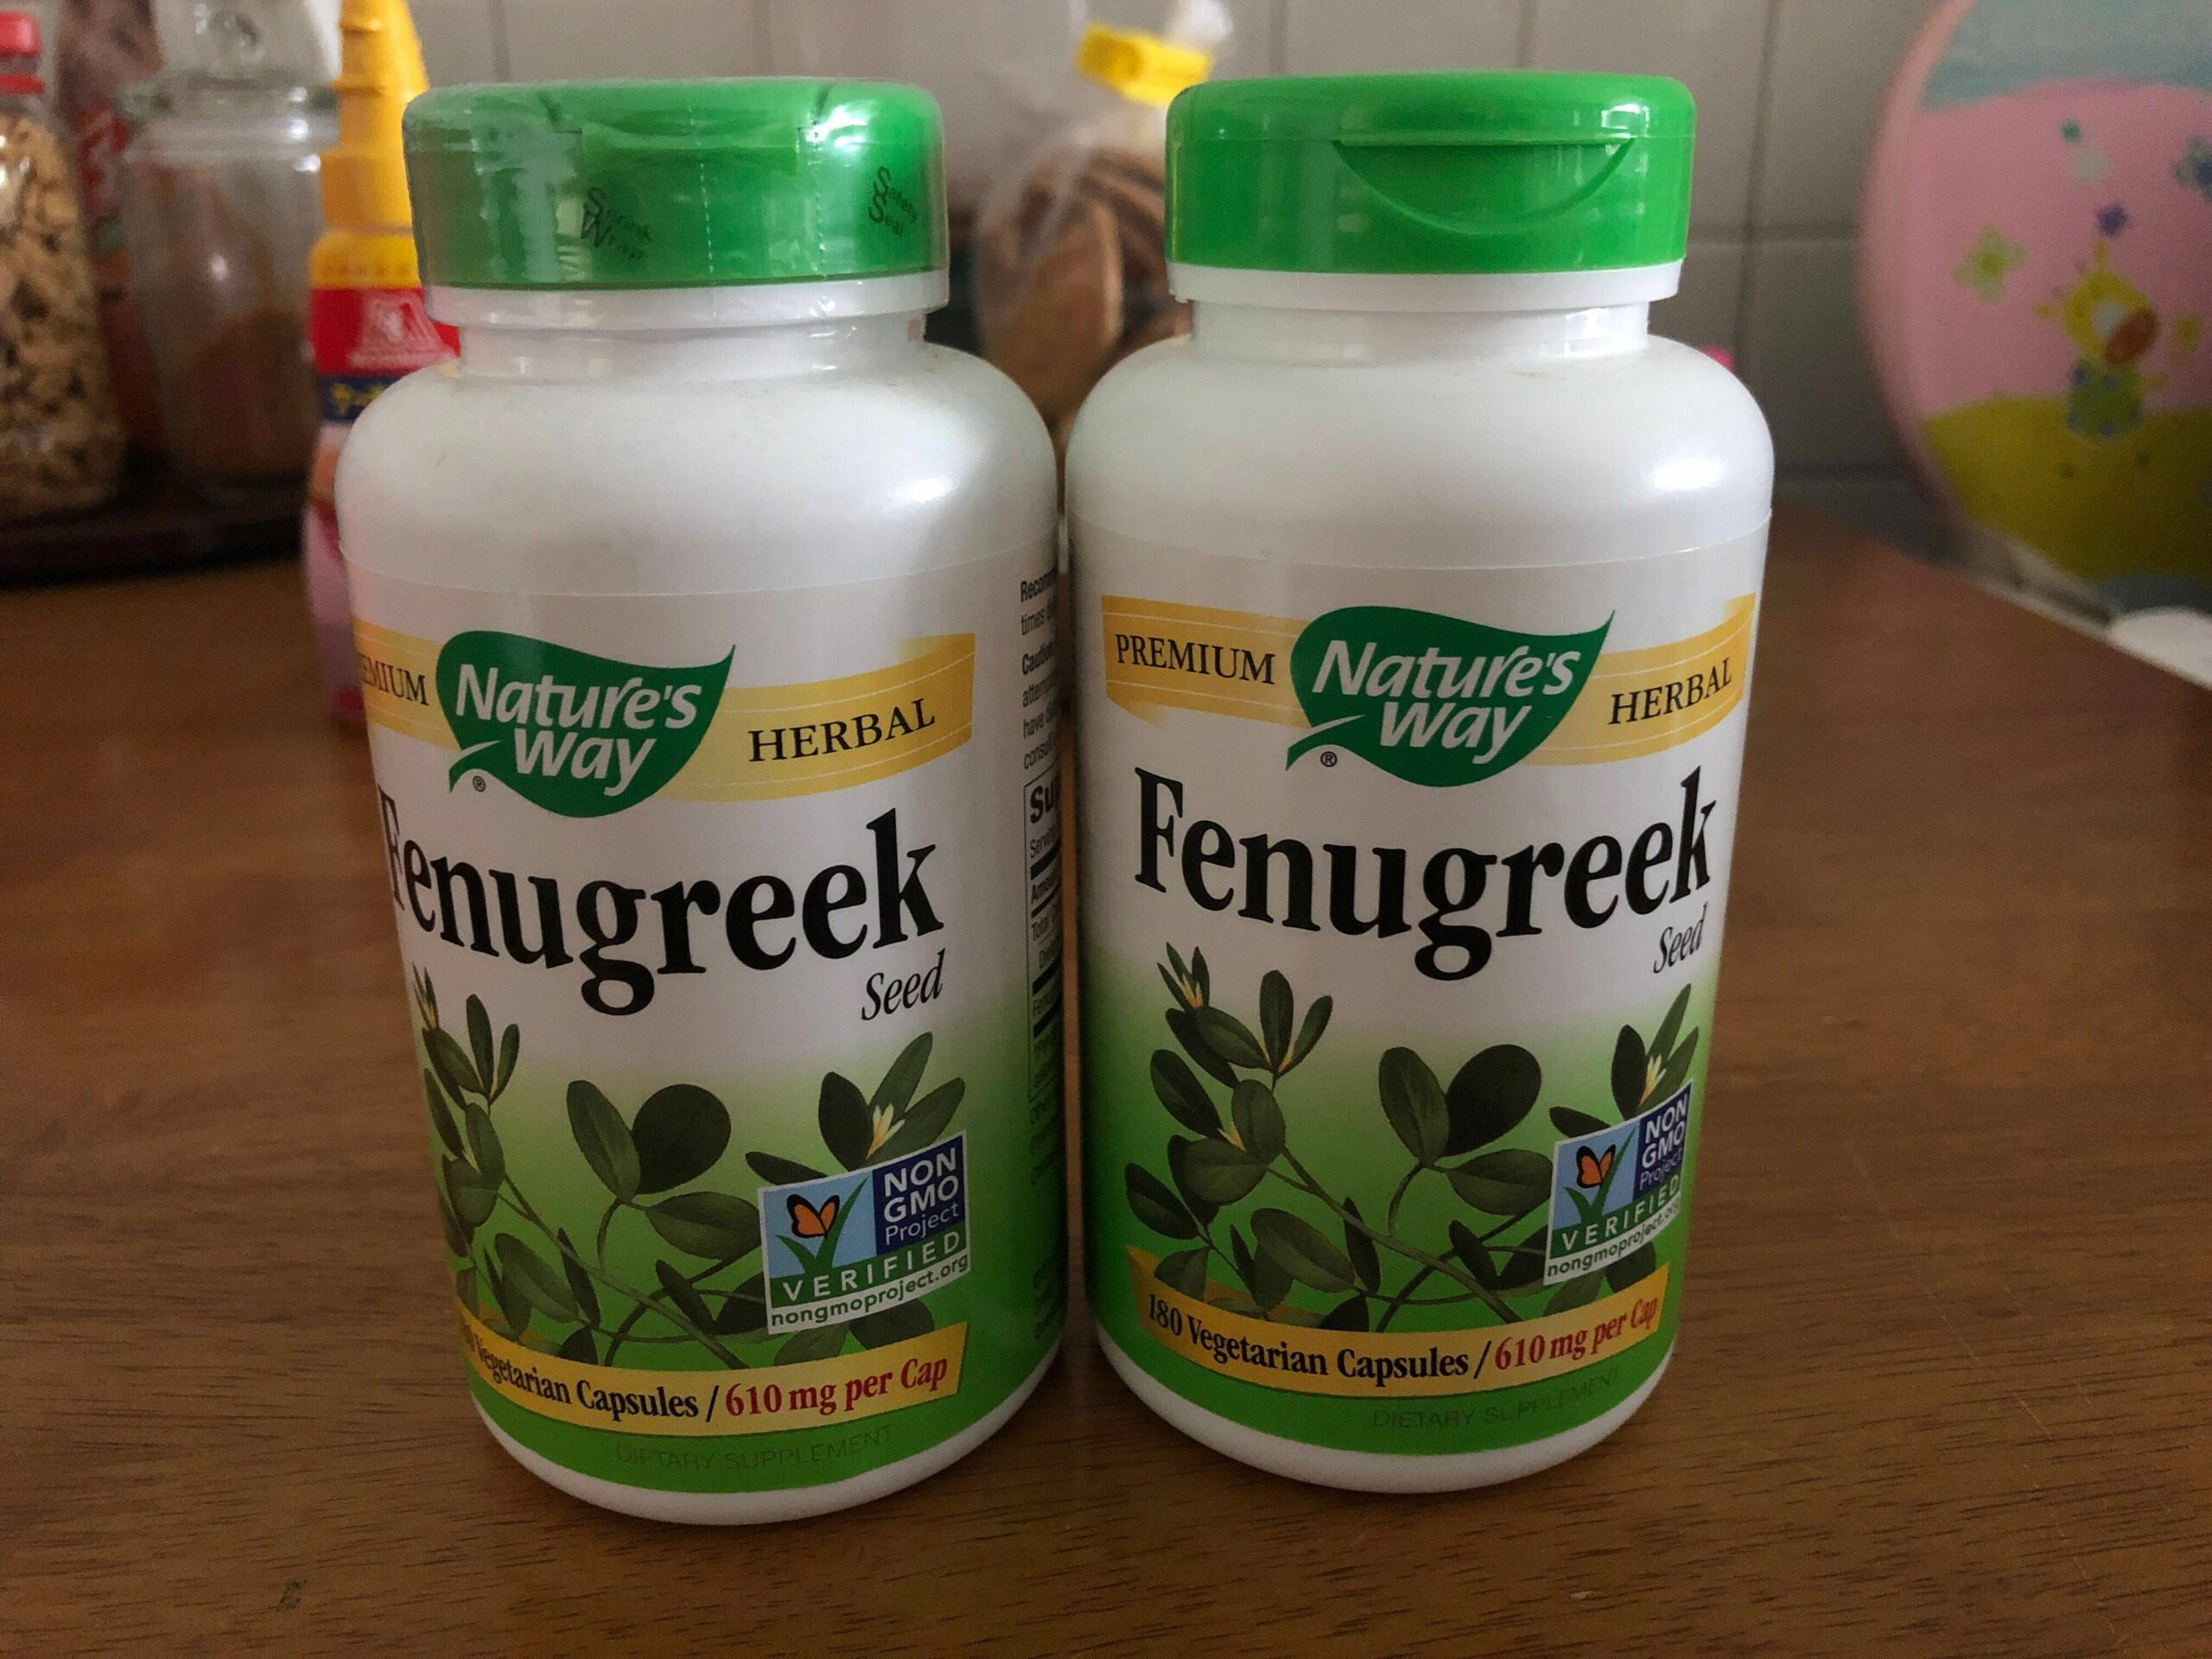 Natures-Way-Fenugreek-Seed-scaled